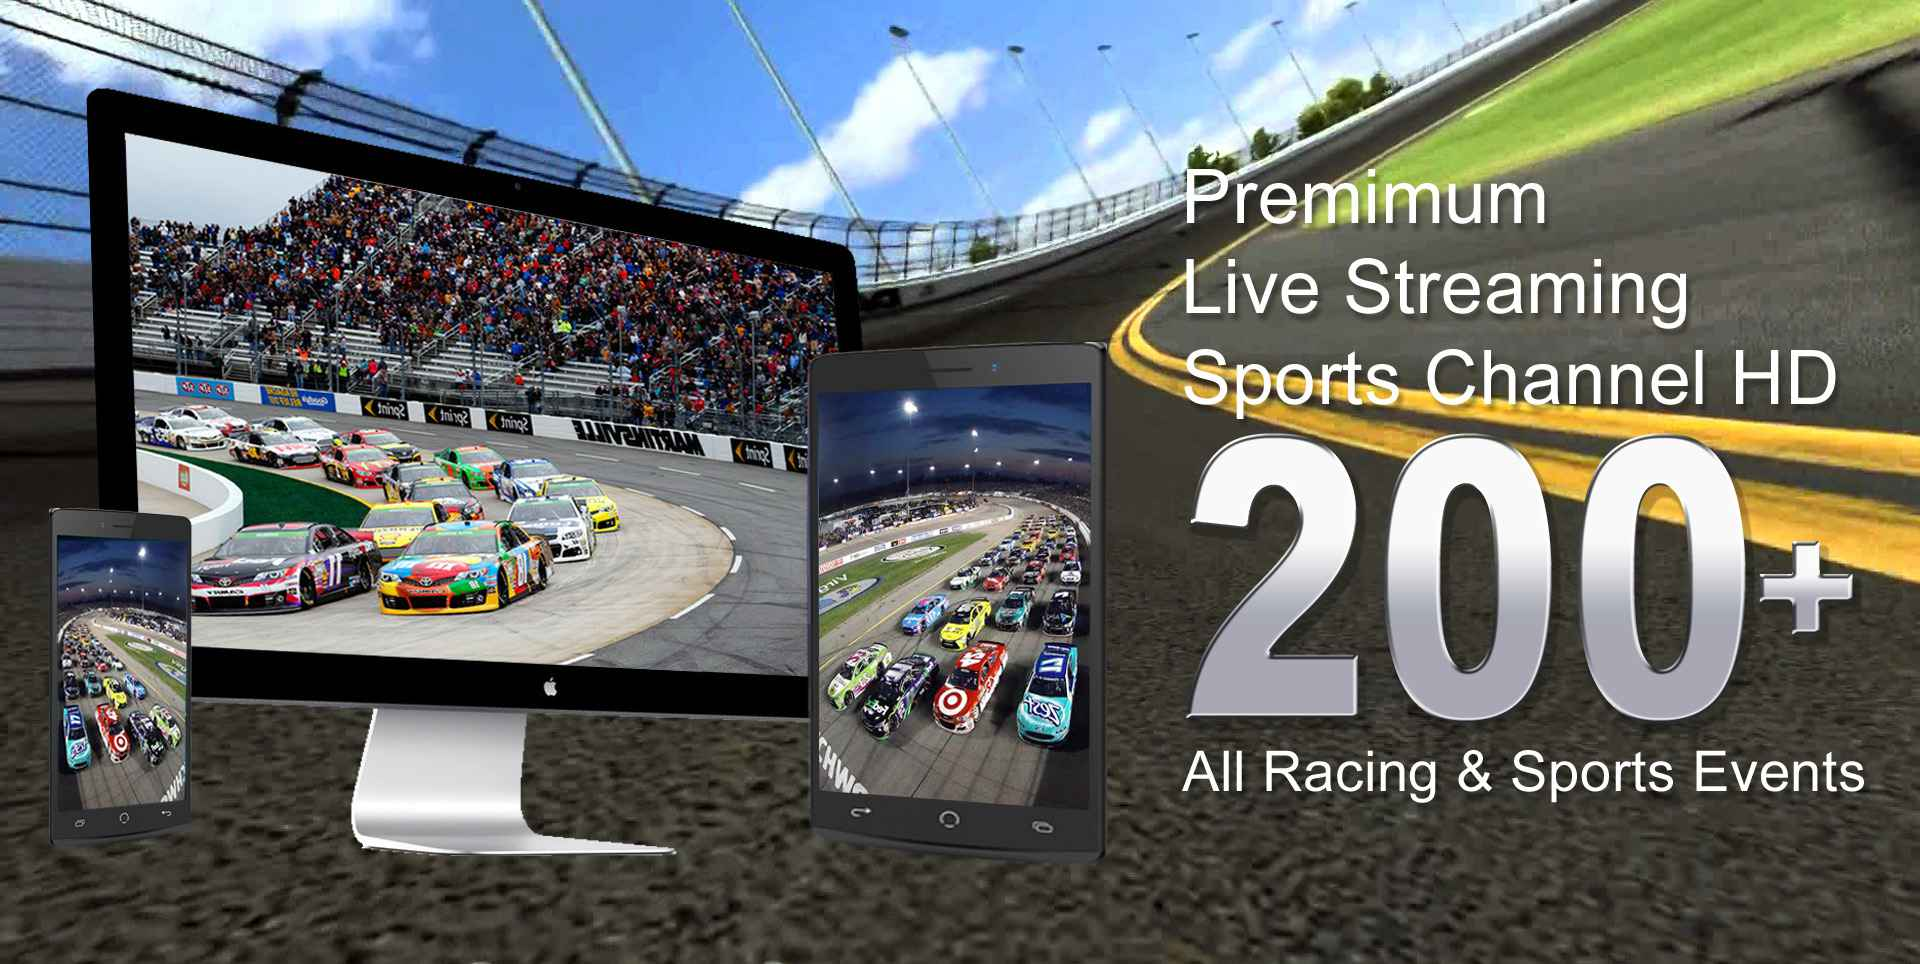 200-buckle-up-2015-live-streaming